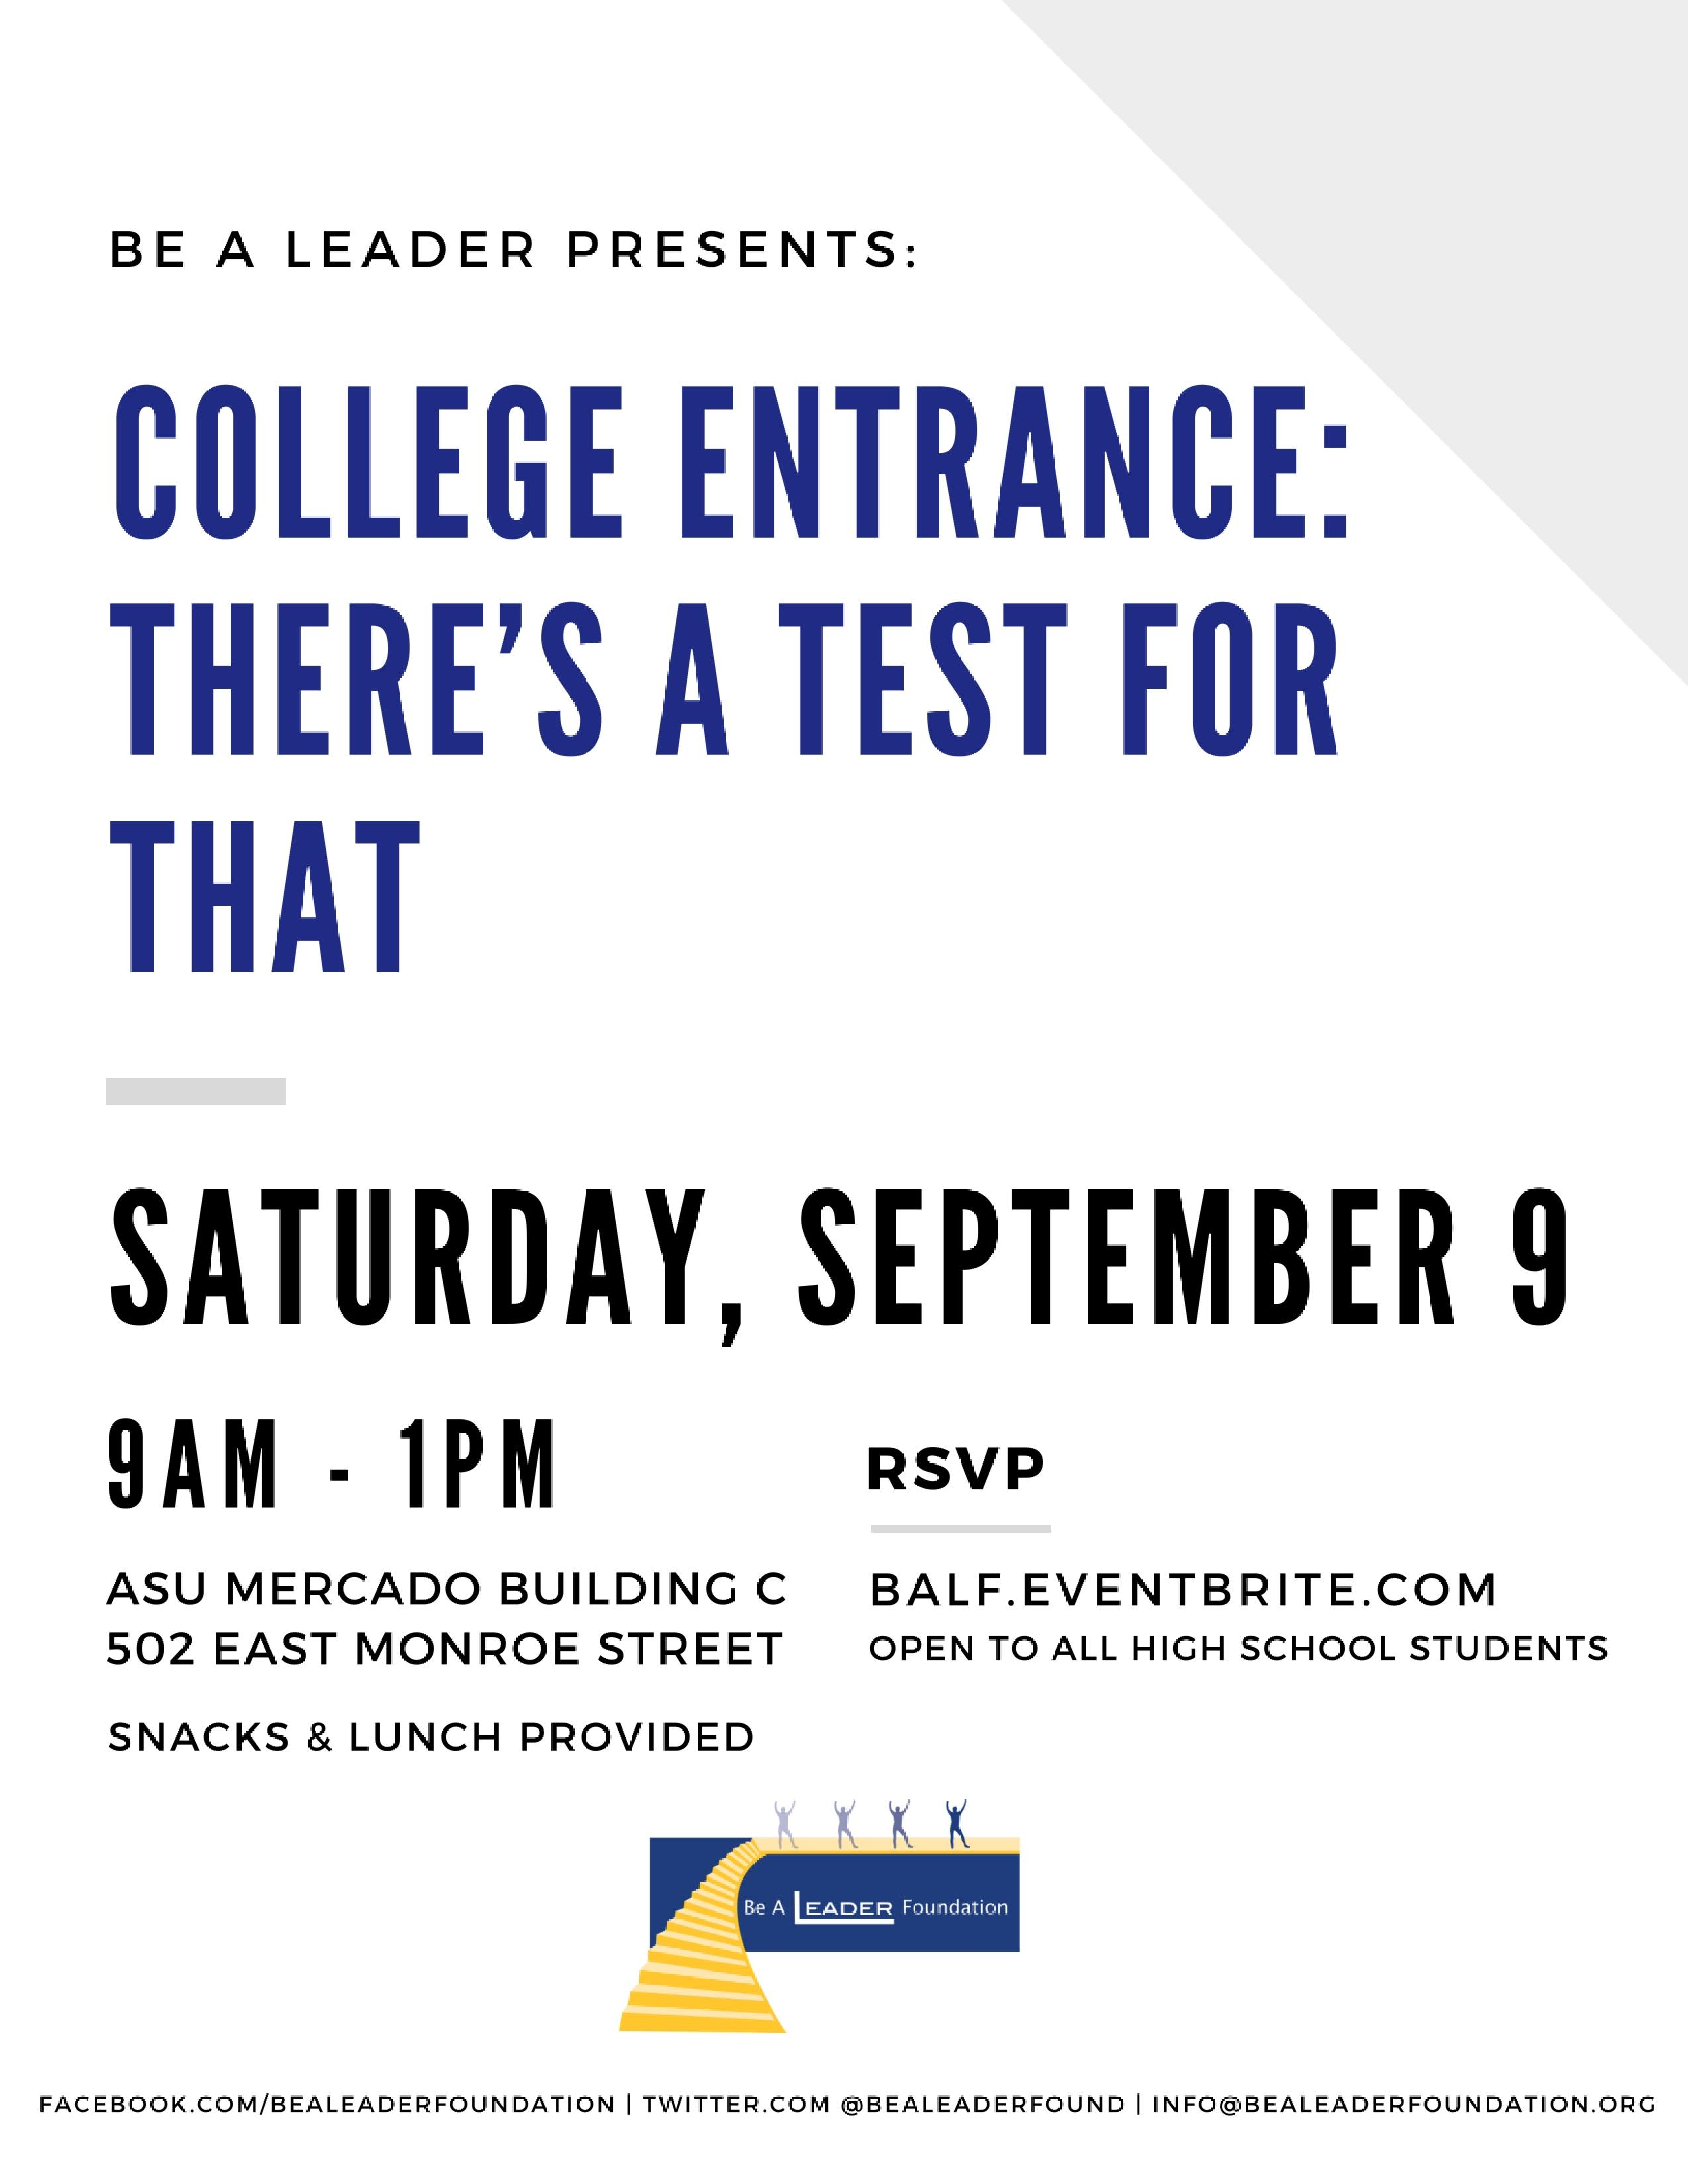 College Entrance: There's a test for that (Be